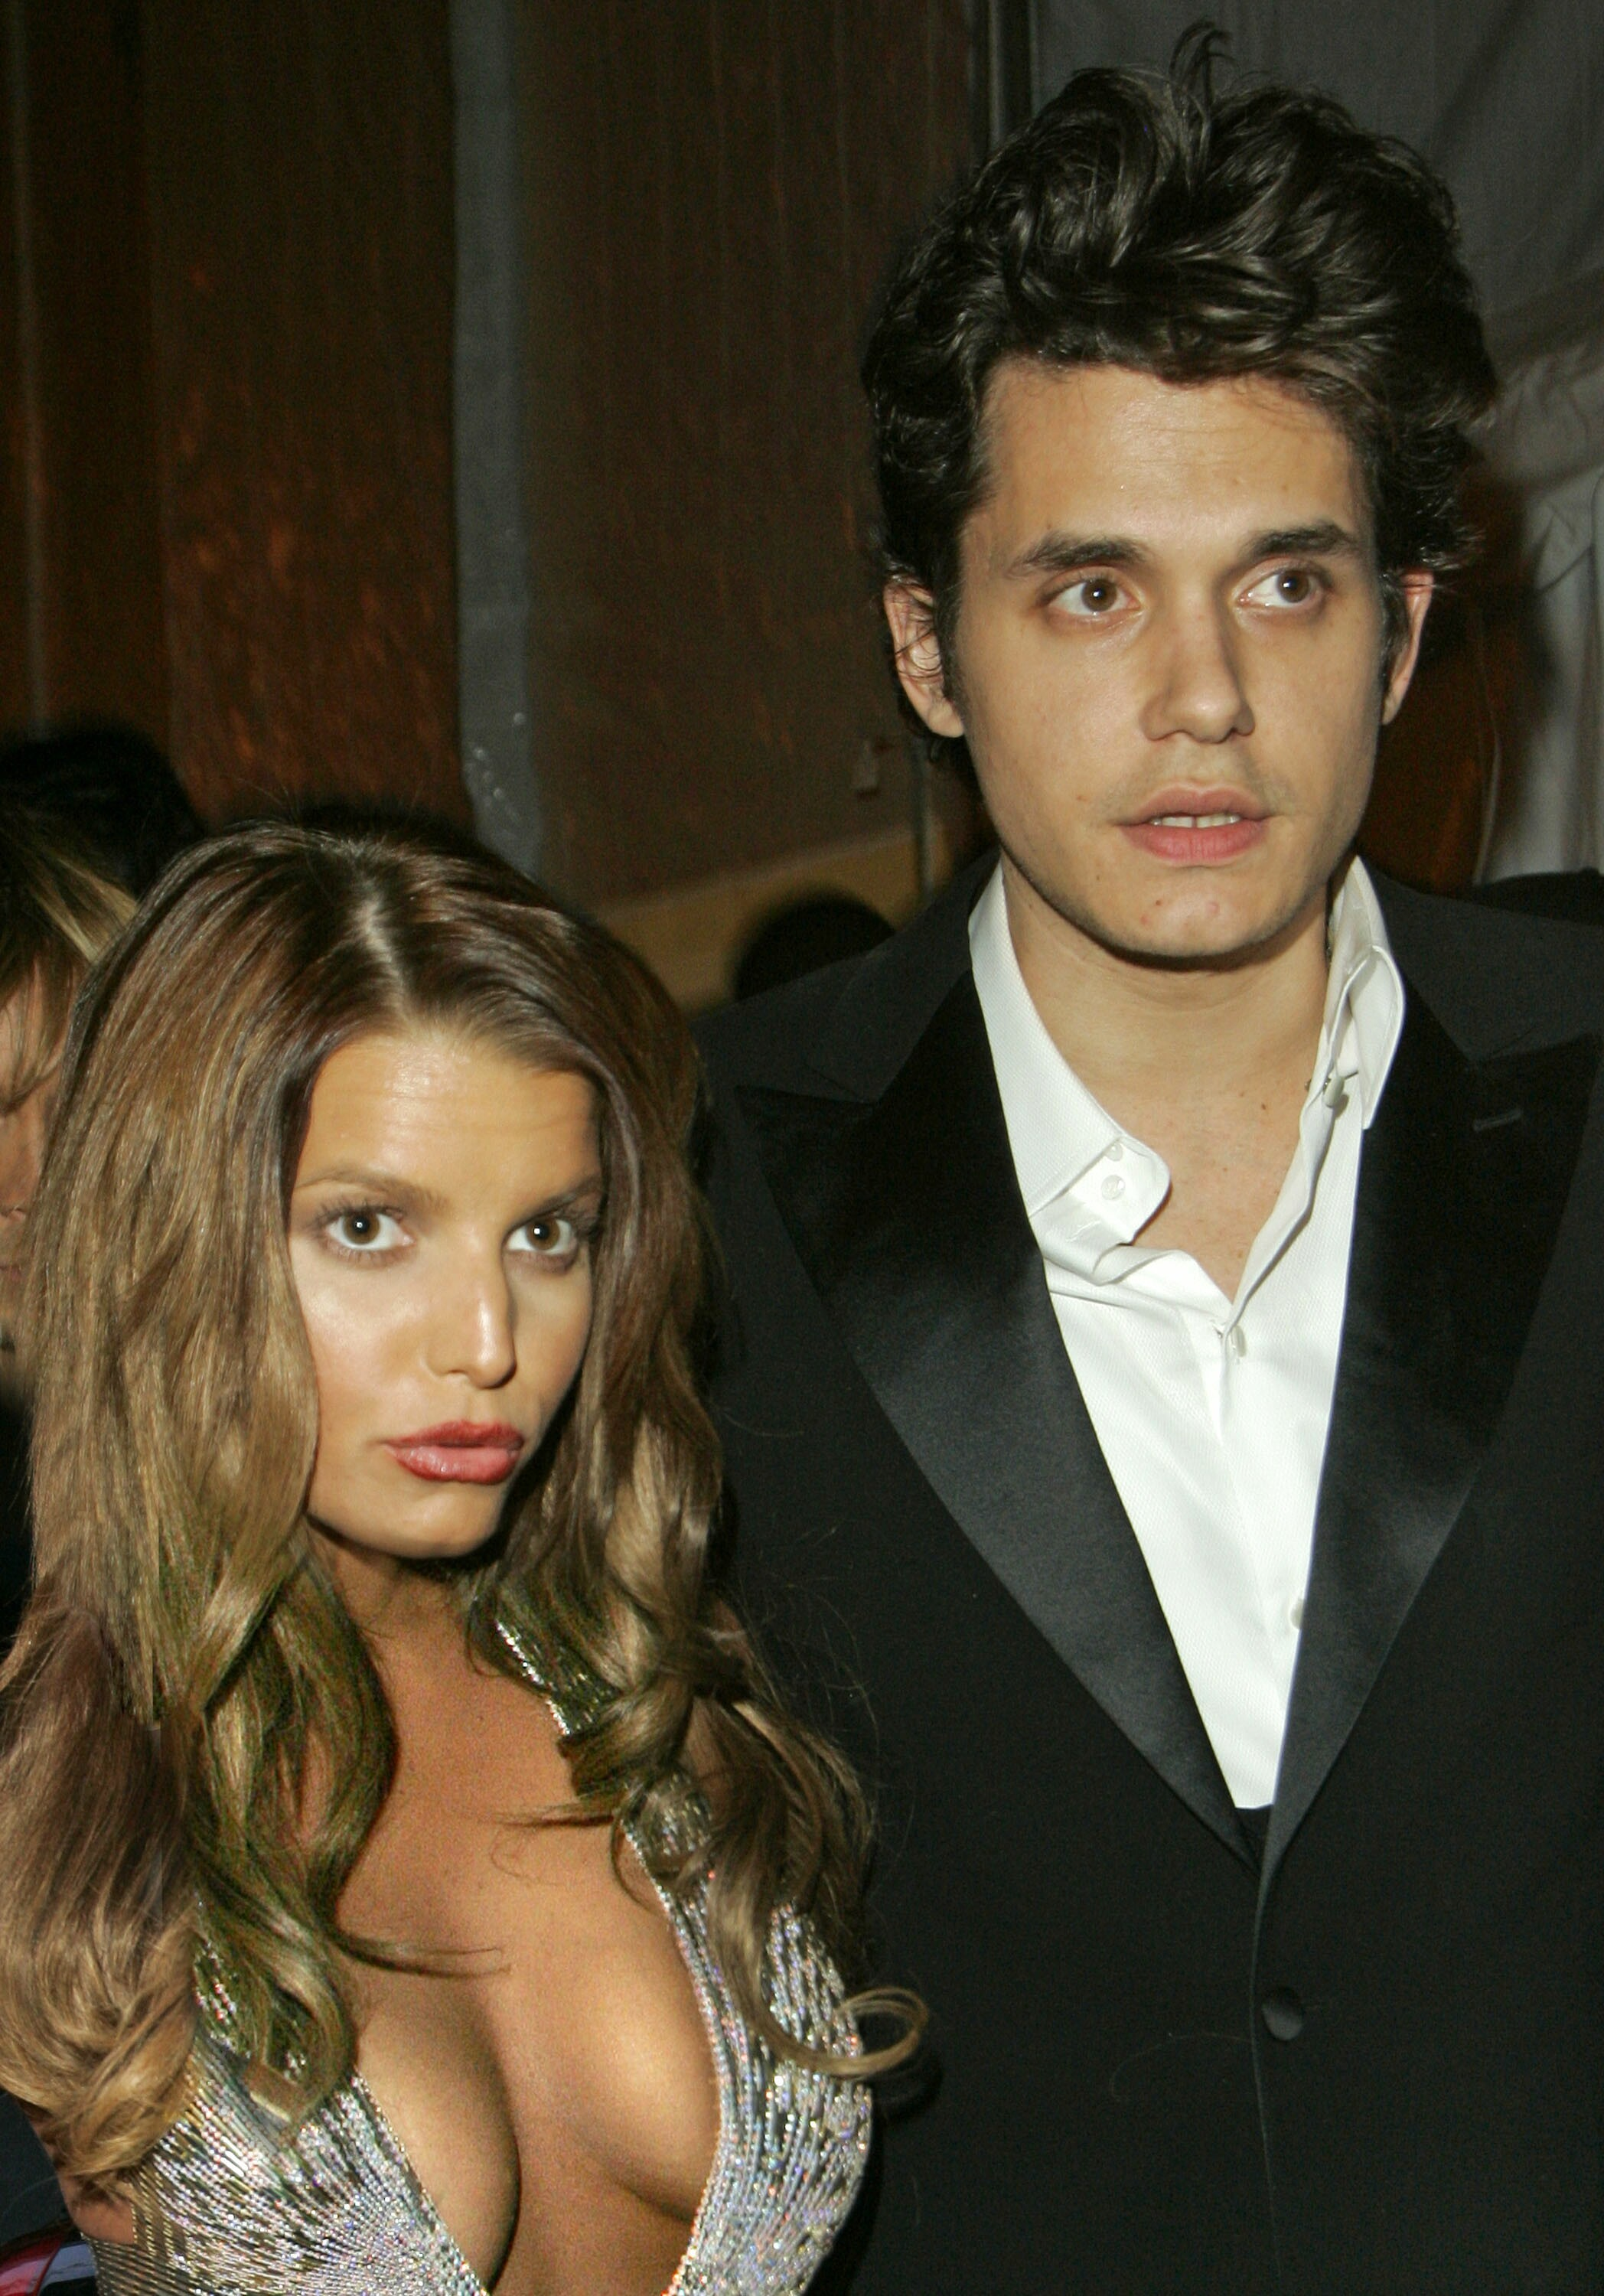 john mayer dating who dated who